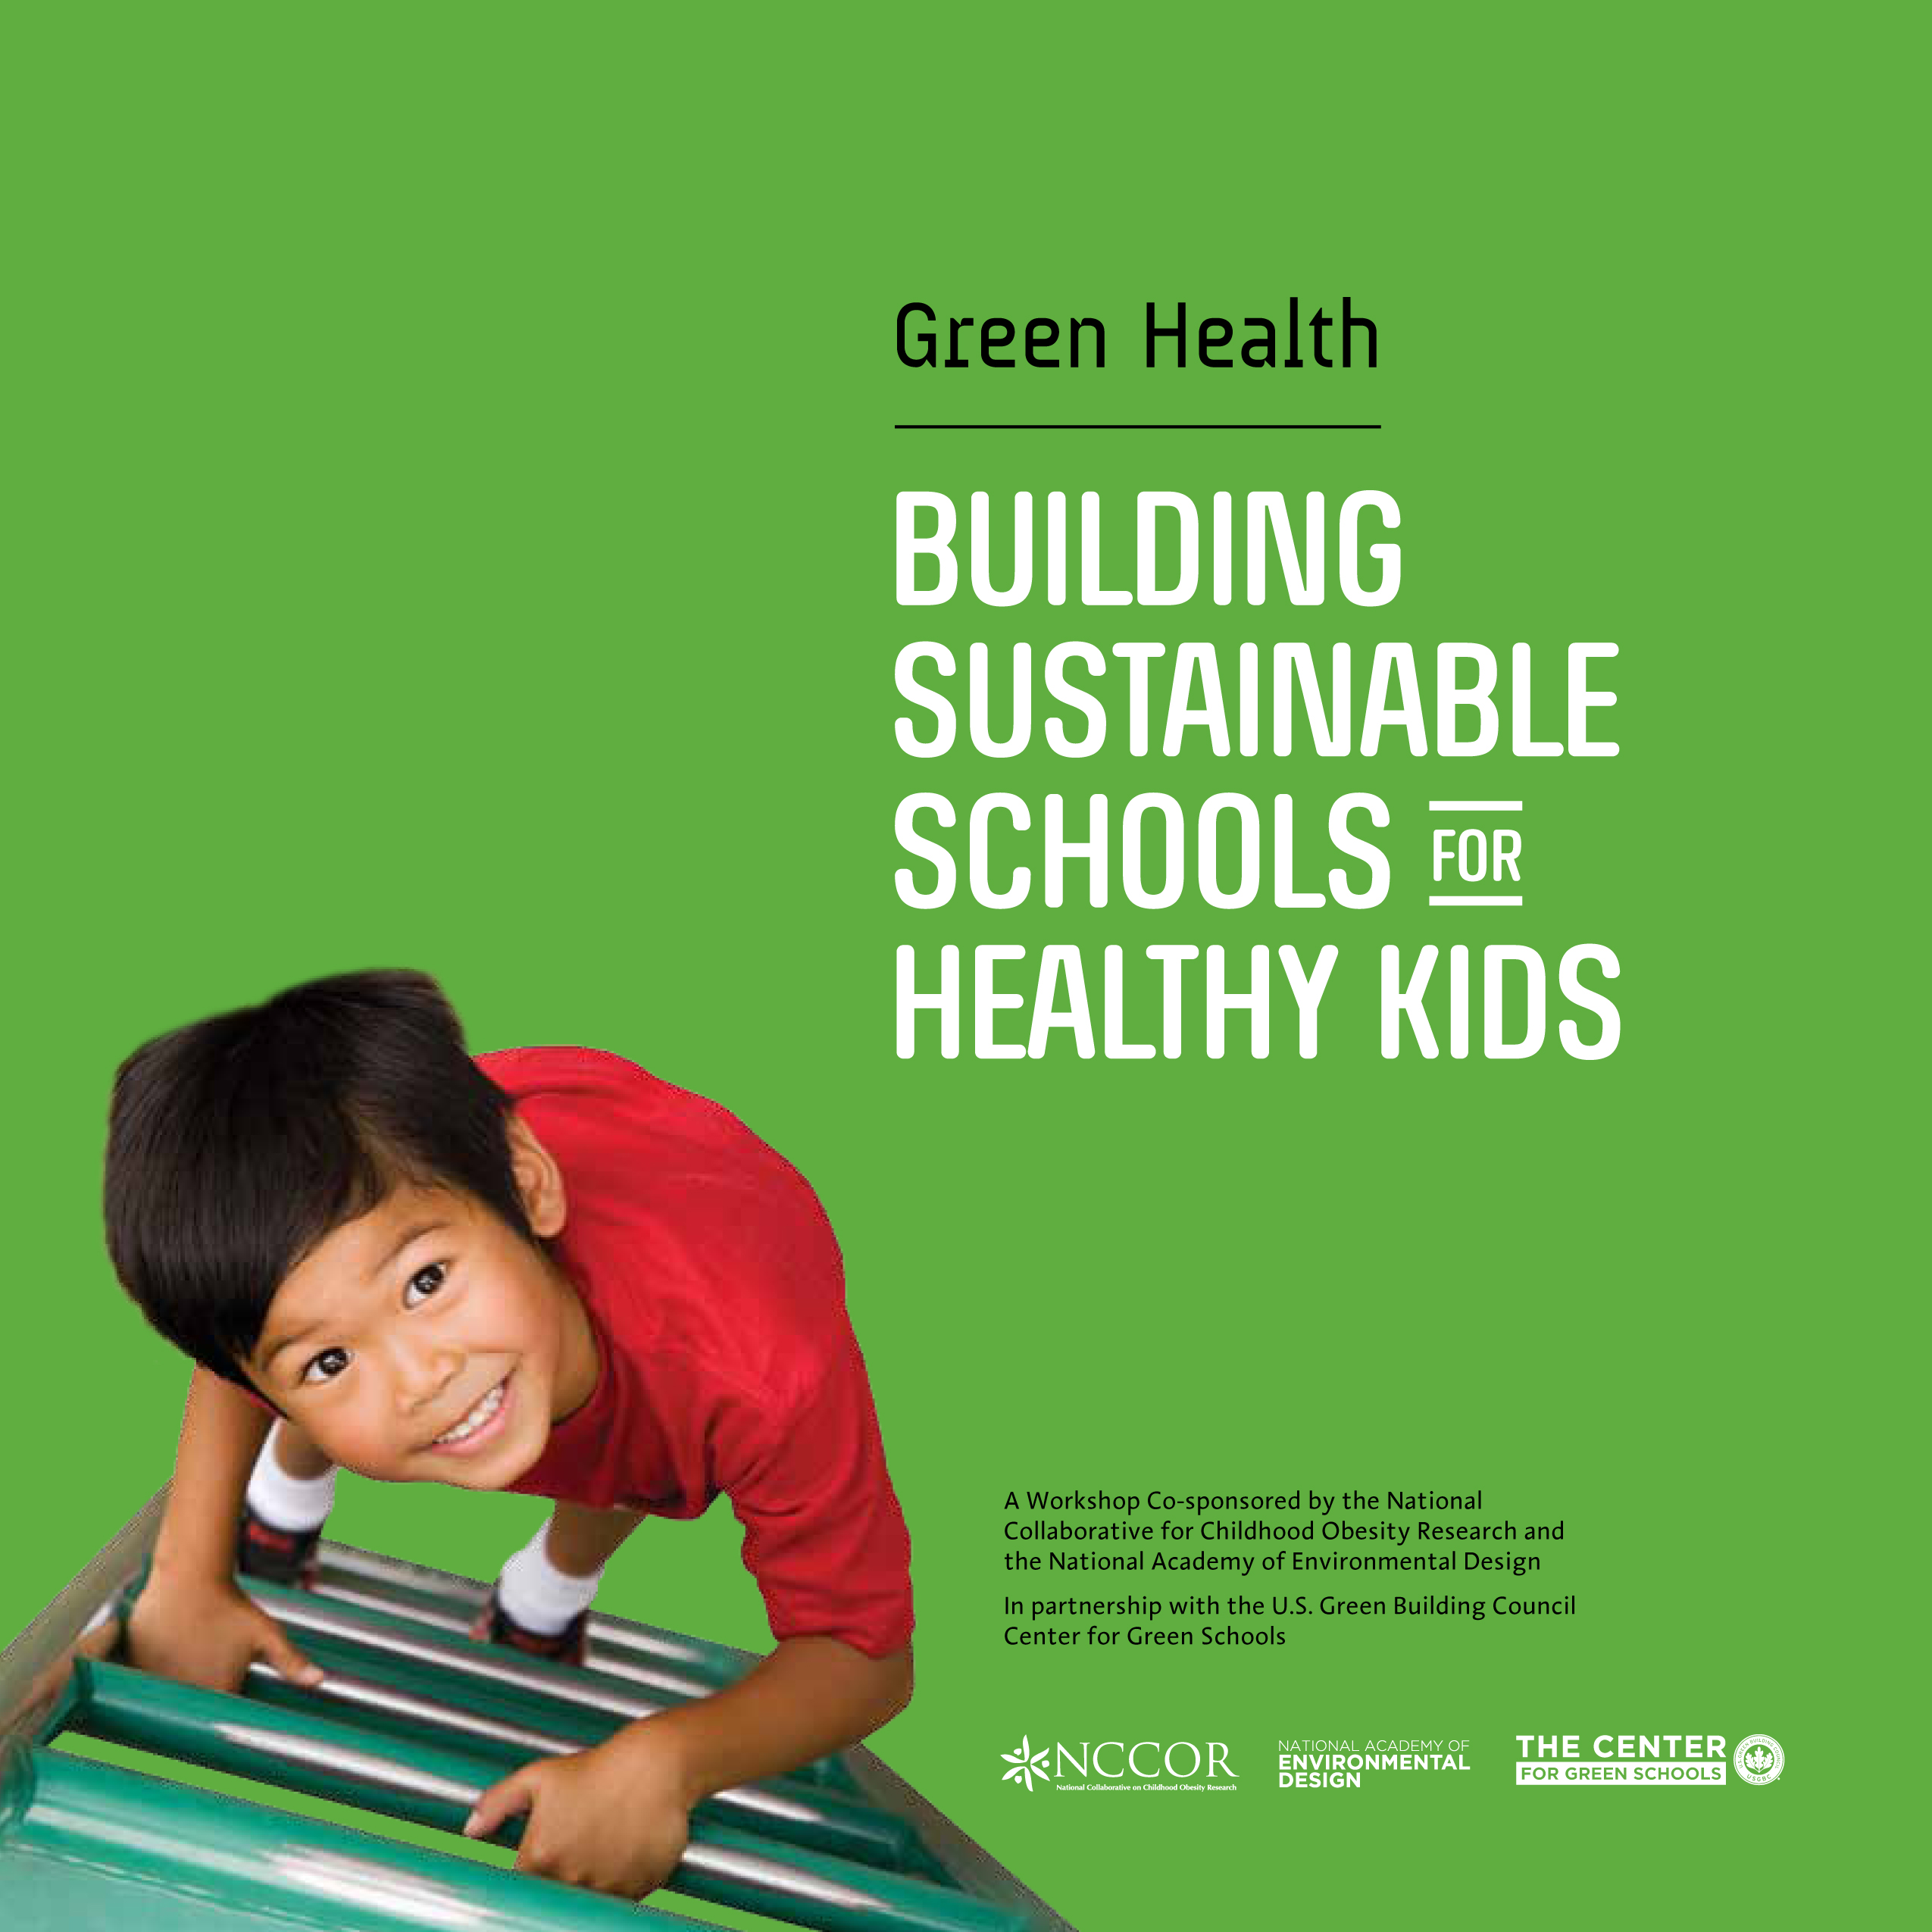 Green Health: Building Sustainable Schools for Healthy Kids — A Workshop